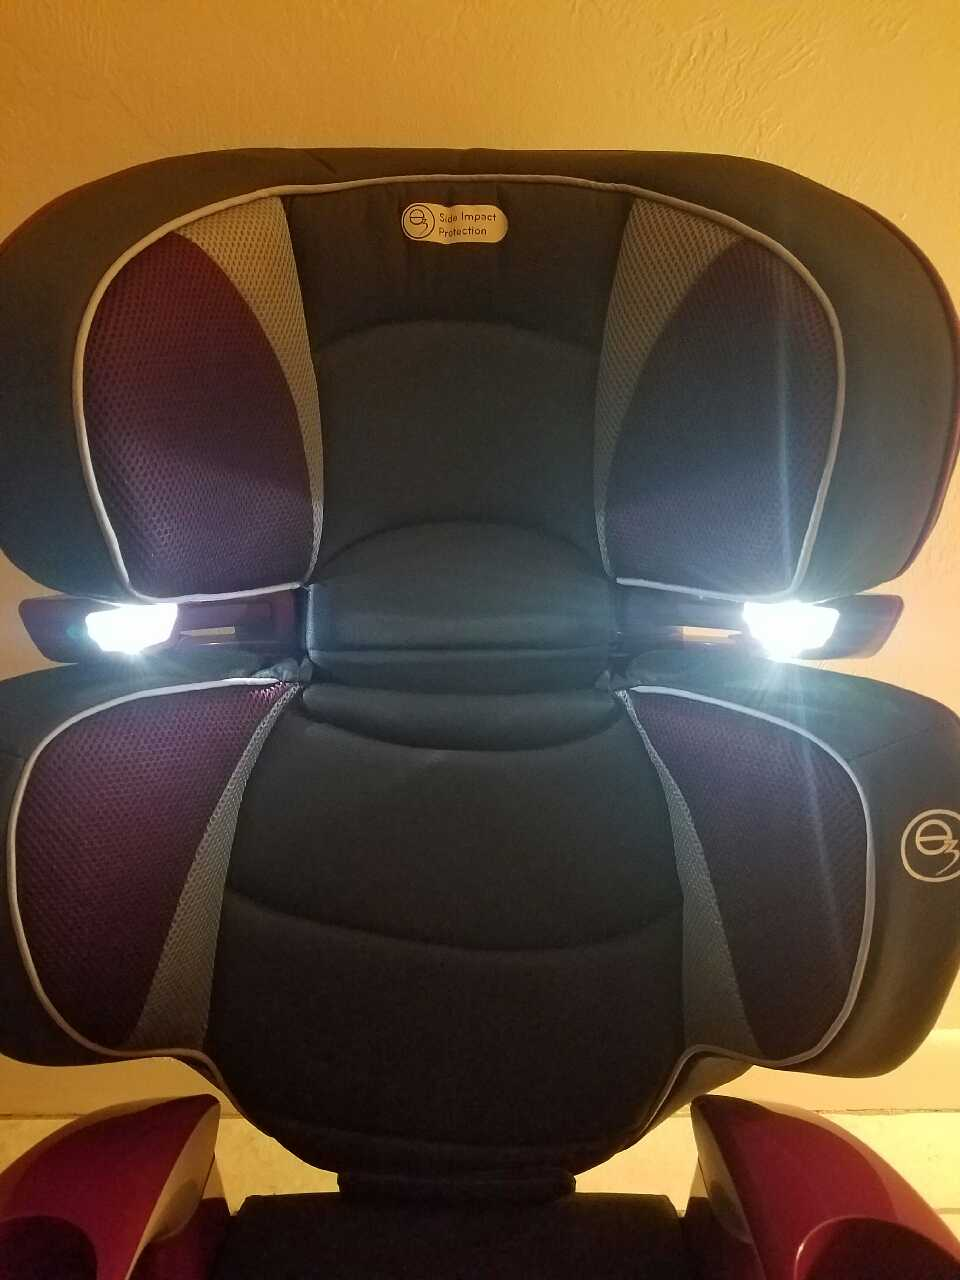 letgo evenflo rightfit booster seat in gainesville fl. Black Bedroom Furniture Sets. Home Design Ideas